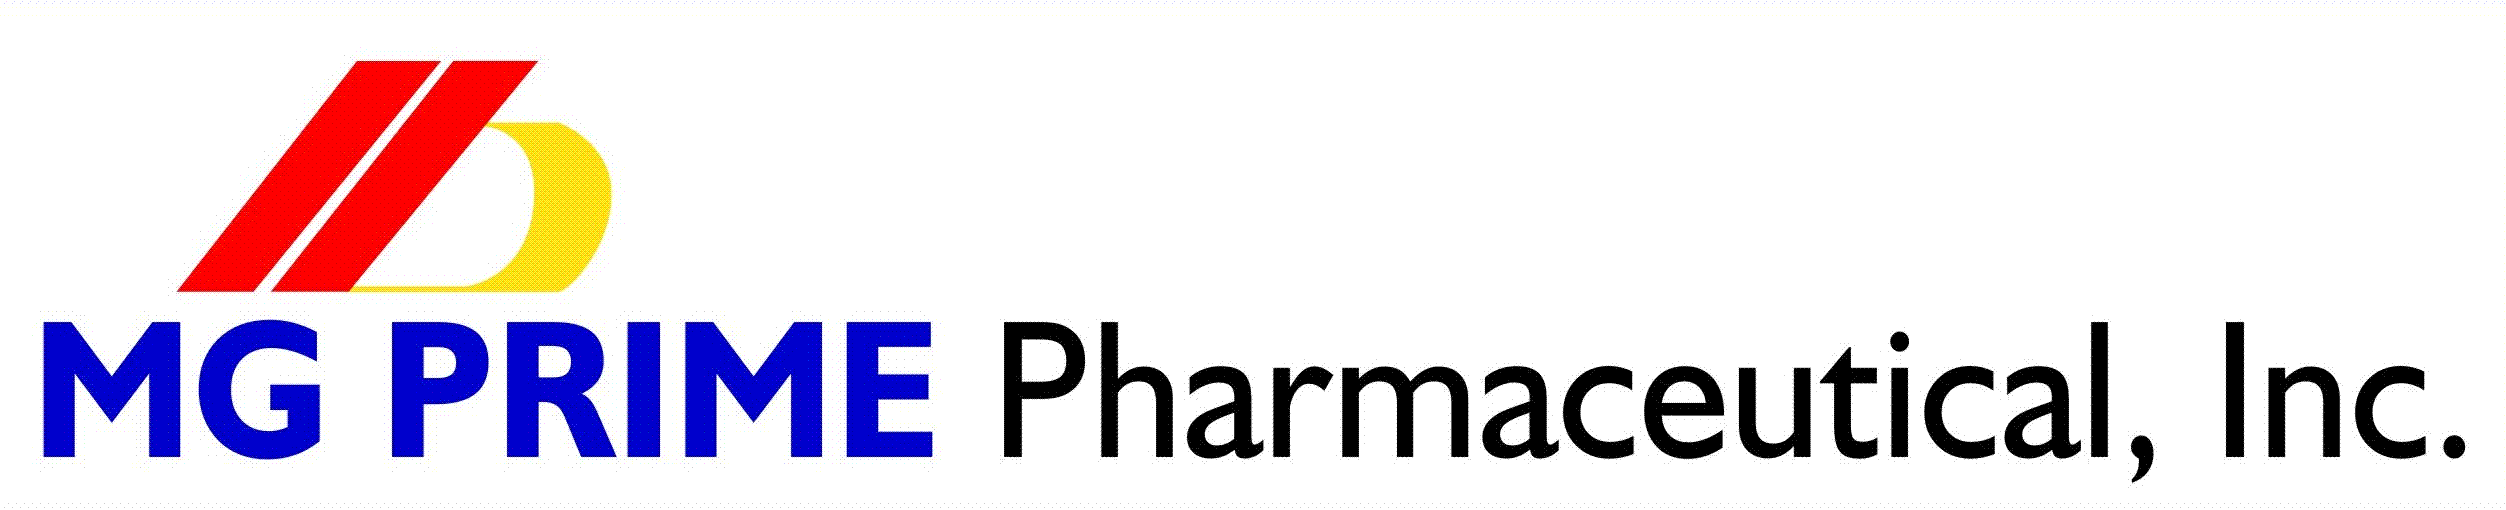 MG Prime Pharmaceutical, Inc.